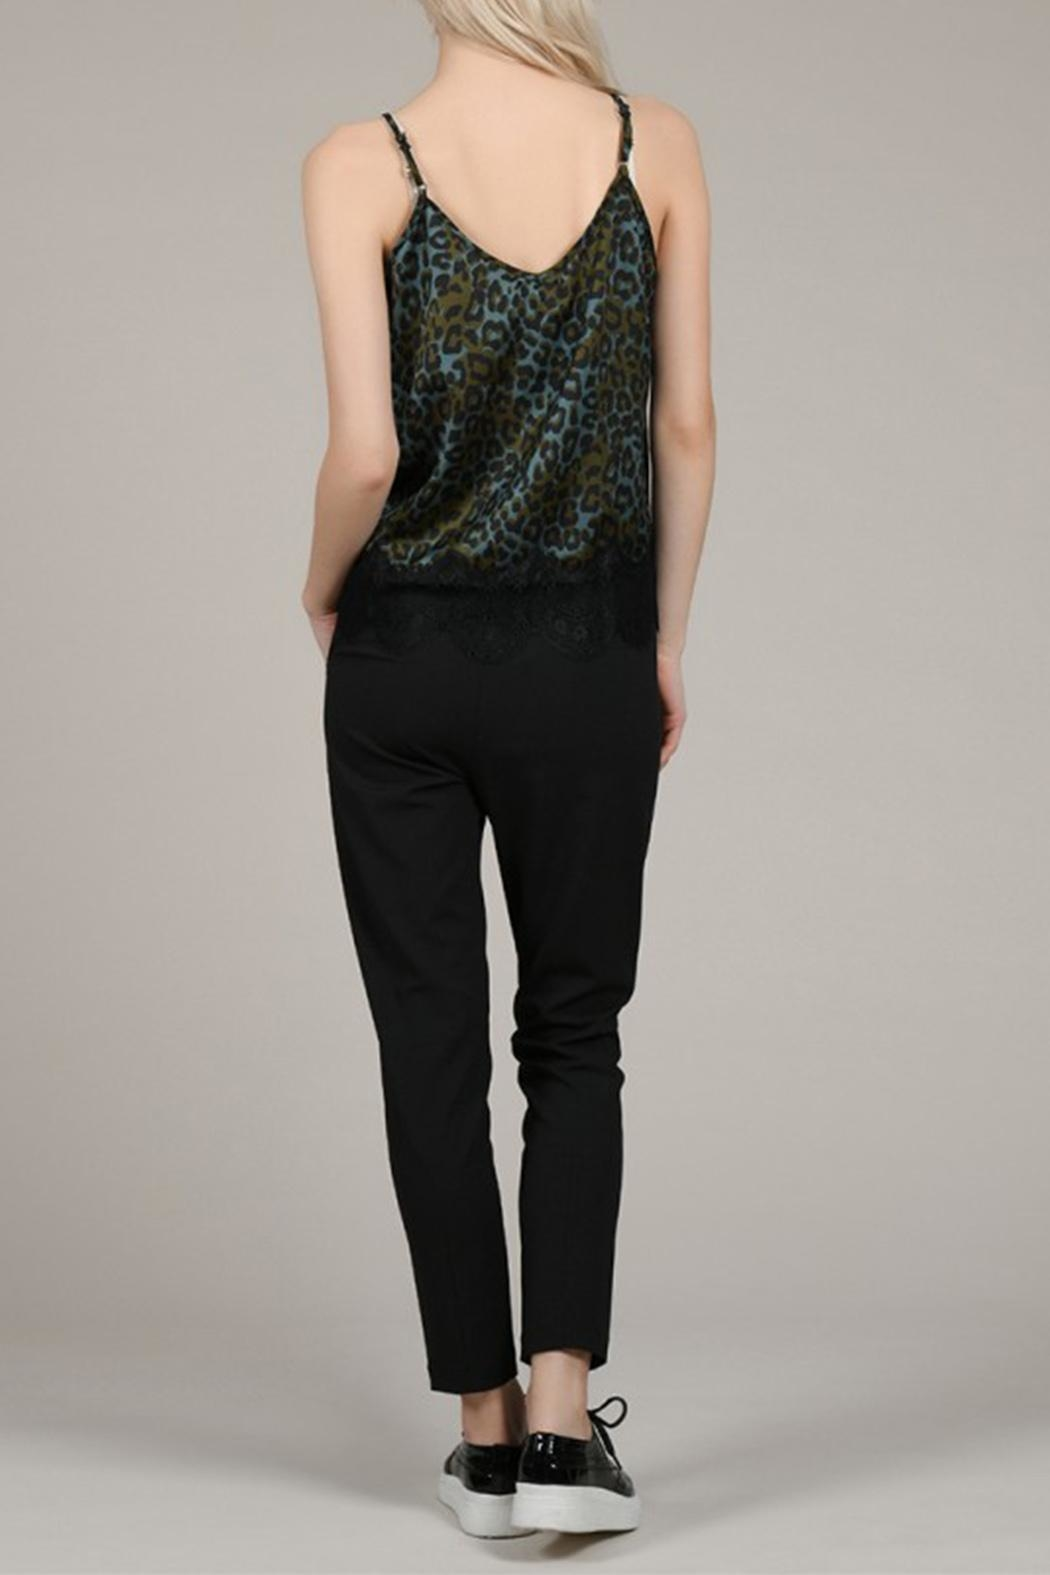 Molly Bracken Leopard Print Camisole - Back Cropped Image